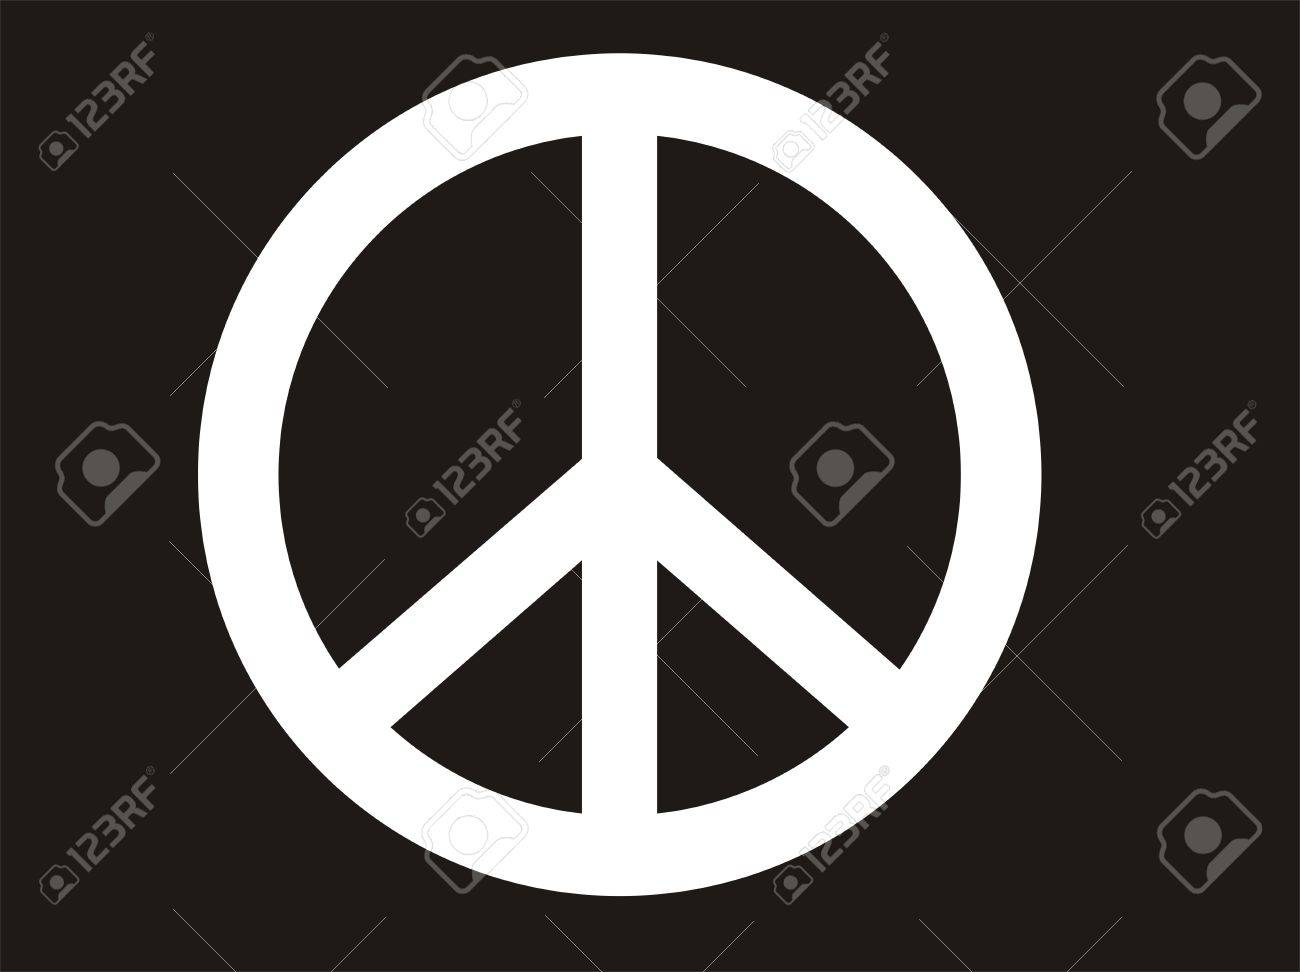 Traditional Illustration Of Peace Symbol In Black And White Image